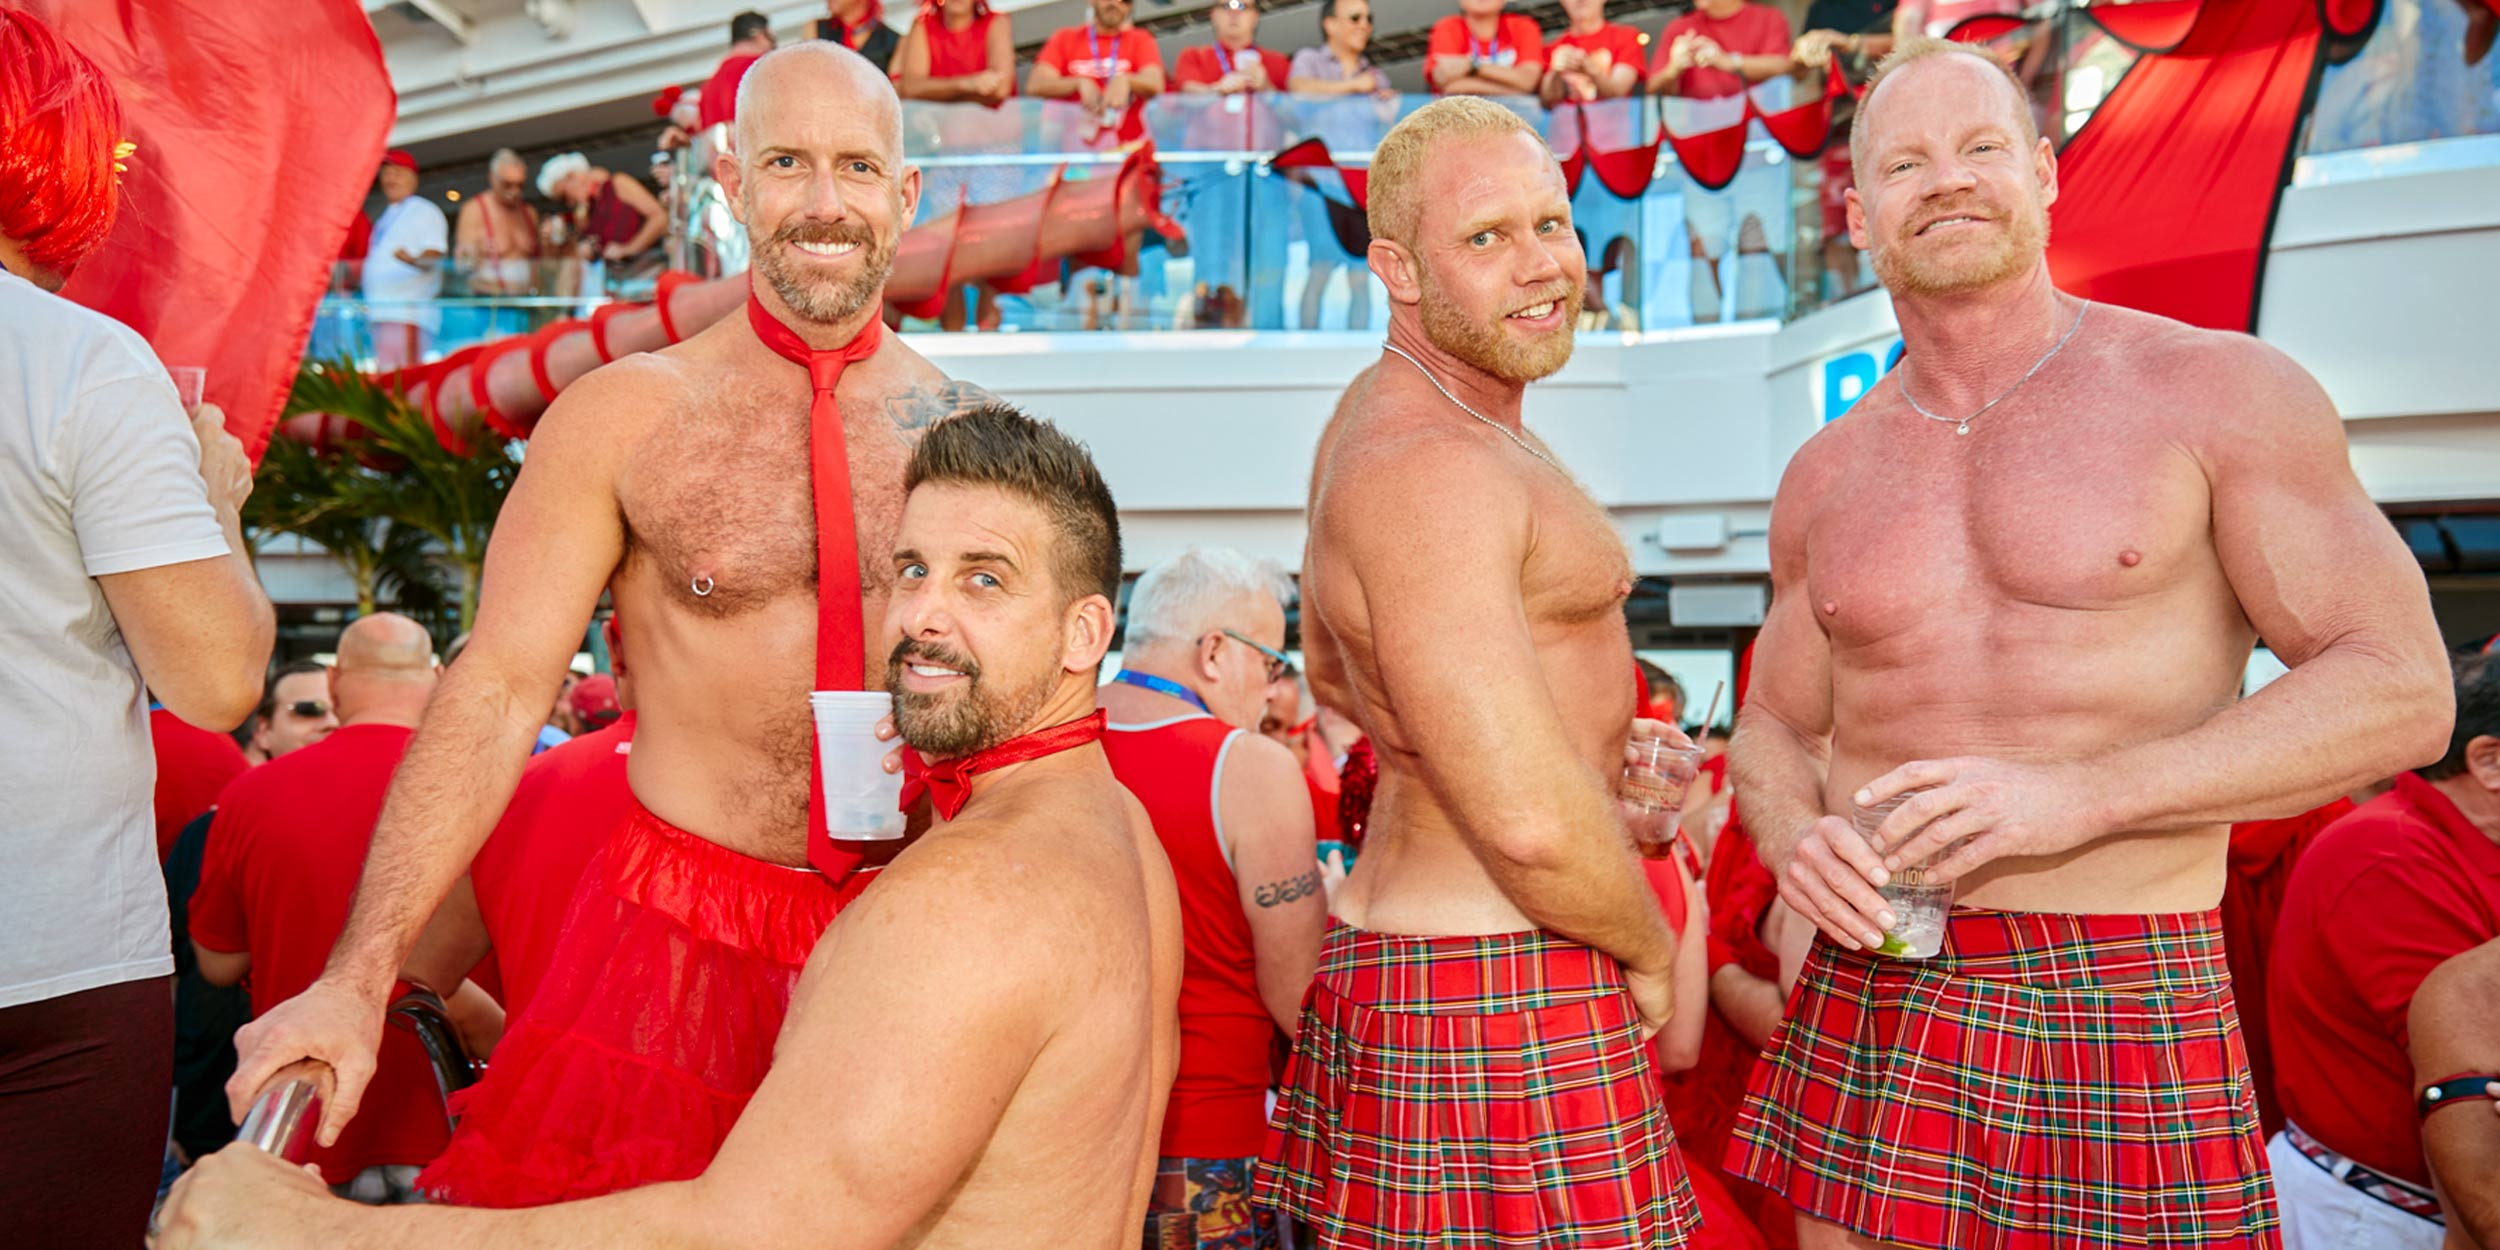 Four shirtless men dancing at a party dressed in red